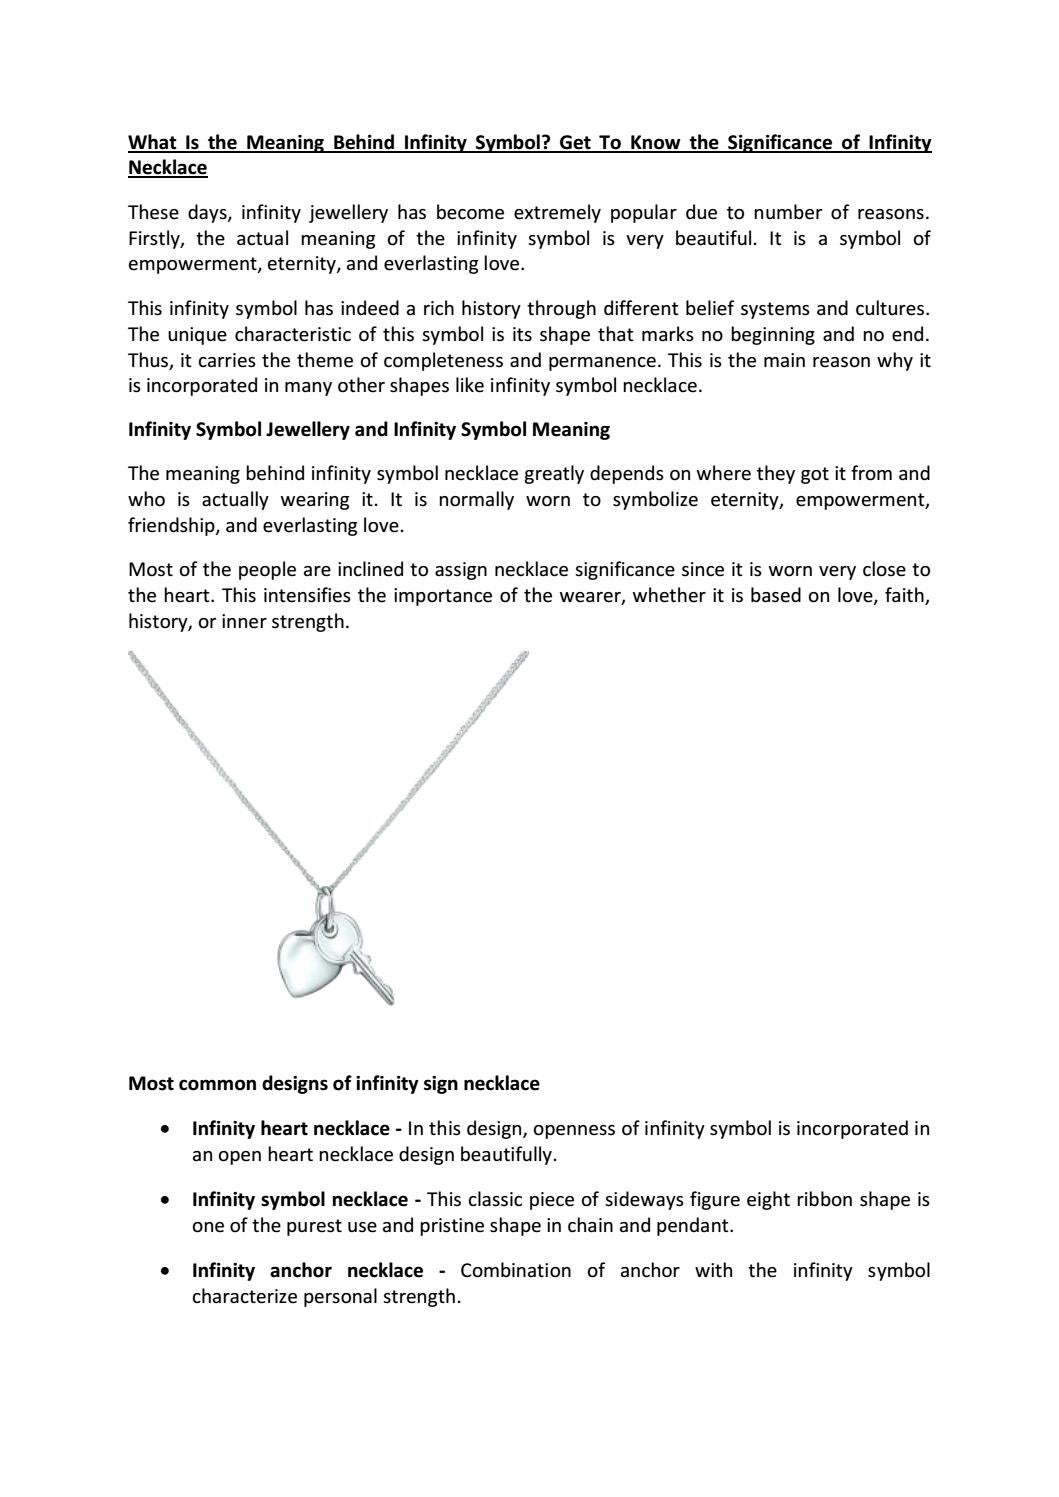 What is the meaning behind infinity symbol get to know the what is the meaning behind infinity symbol get to know the significance of infinity necklace by alexis byron issuu buycottarizona Images